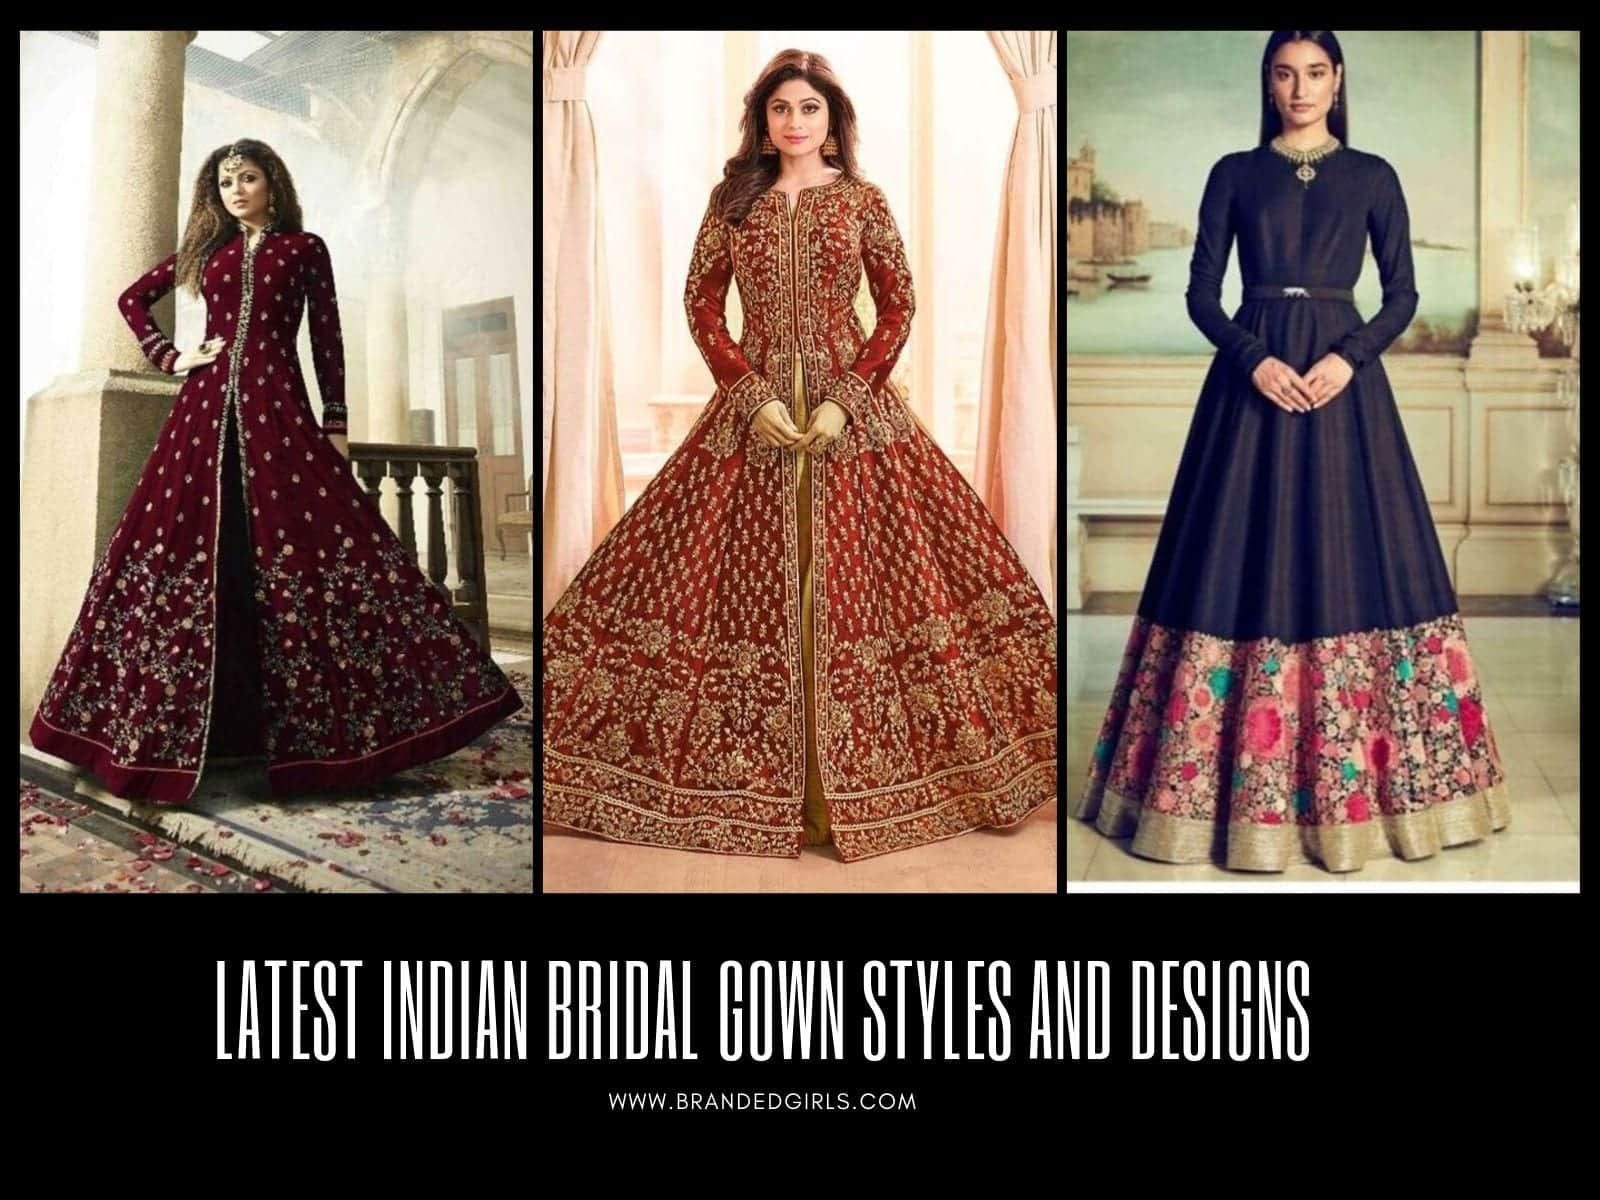 30 Latest Indian Bridal Gown Styles Designs to Try In 2021